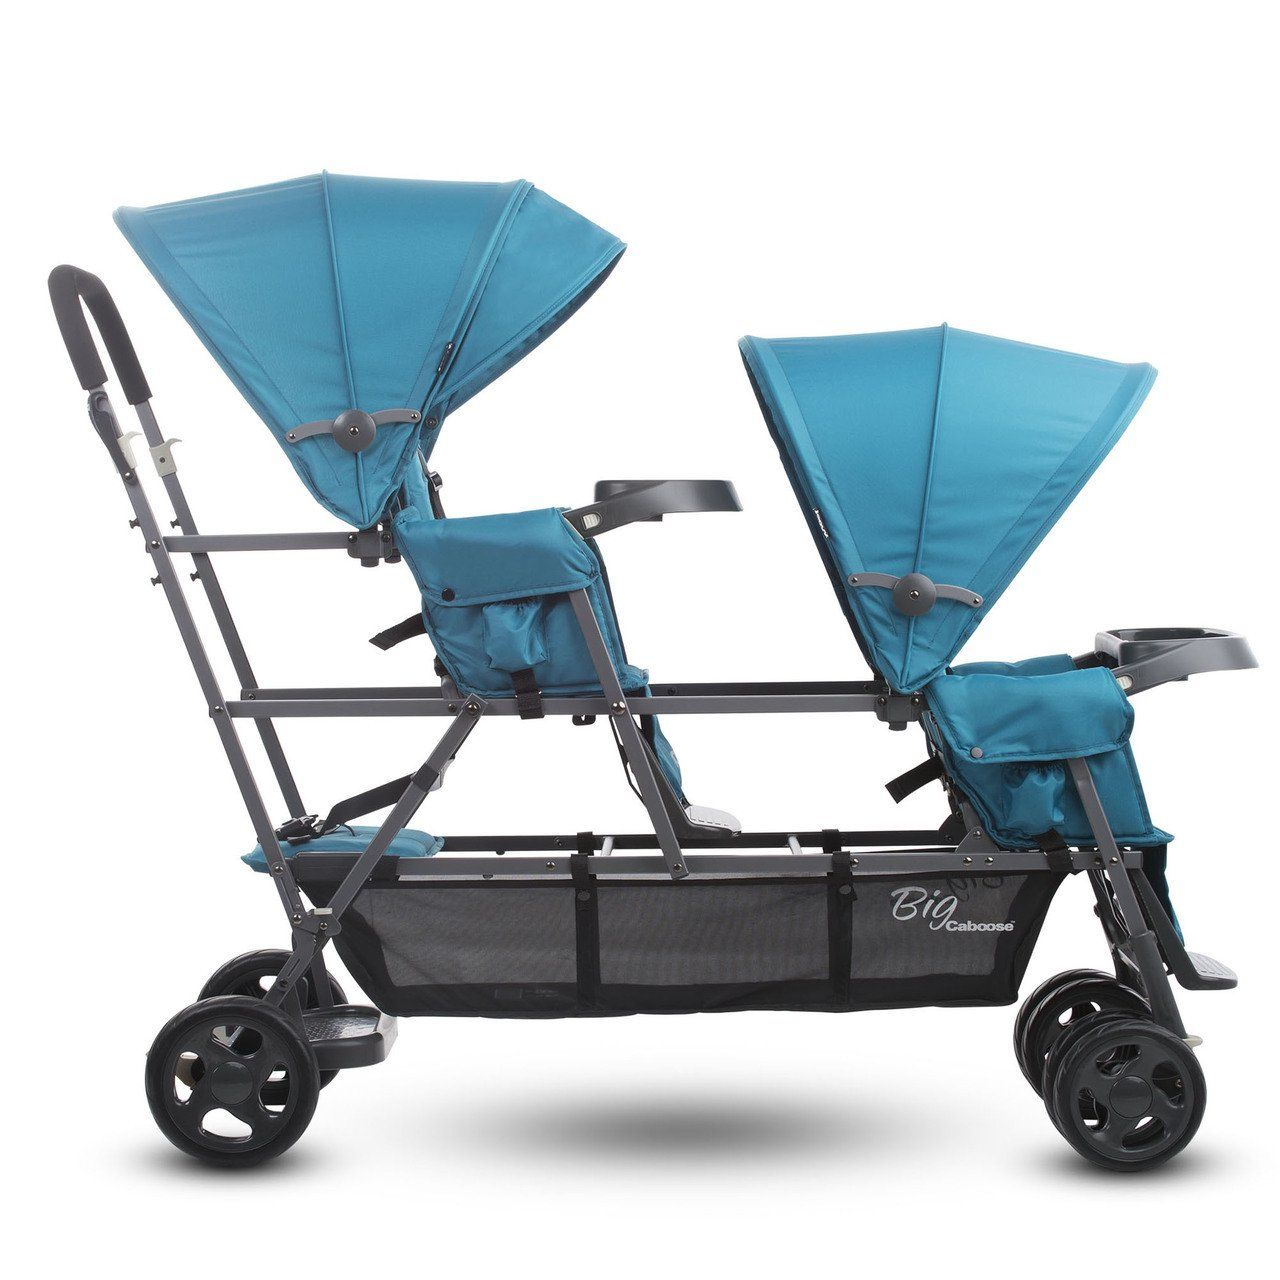 Joovy Big Caboose Graphite Sit and Stand Triple Stroller